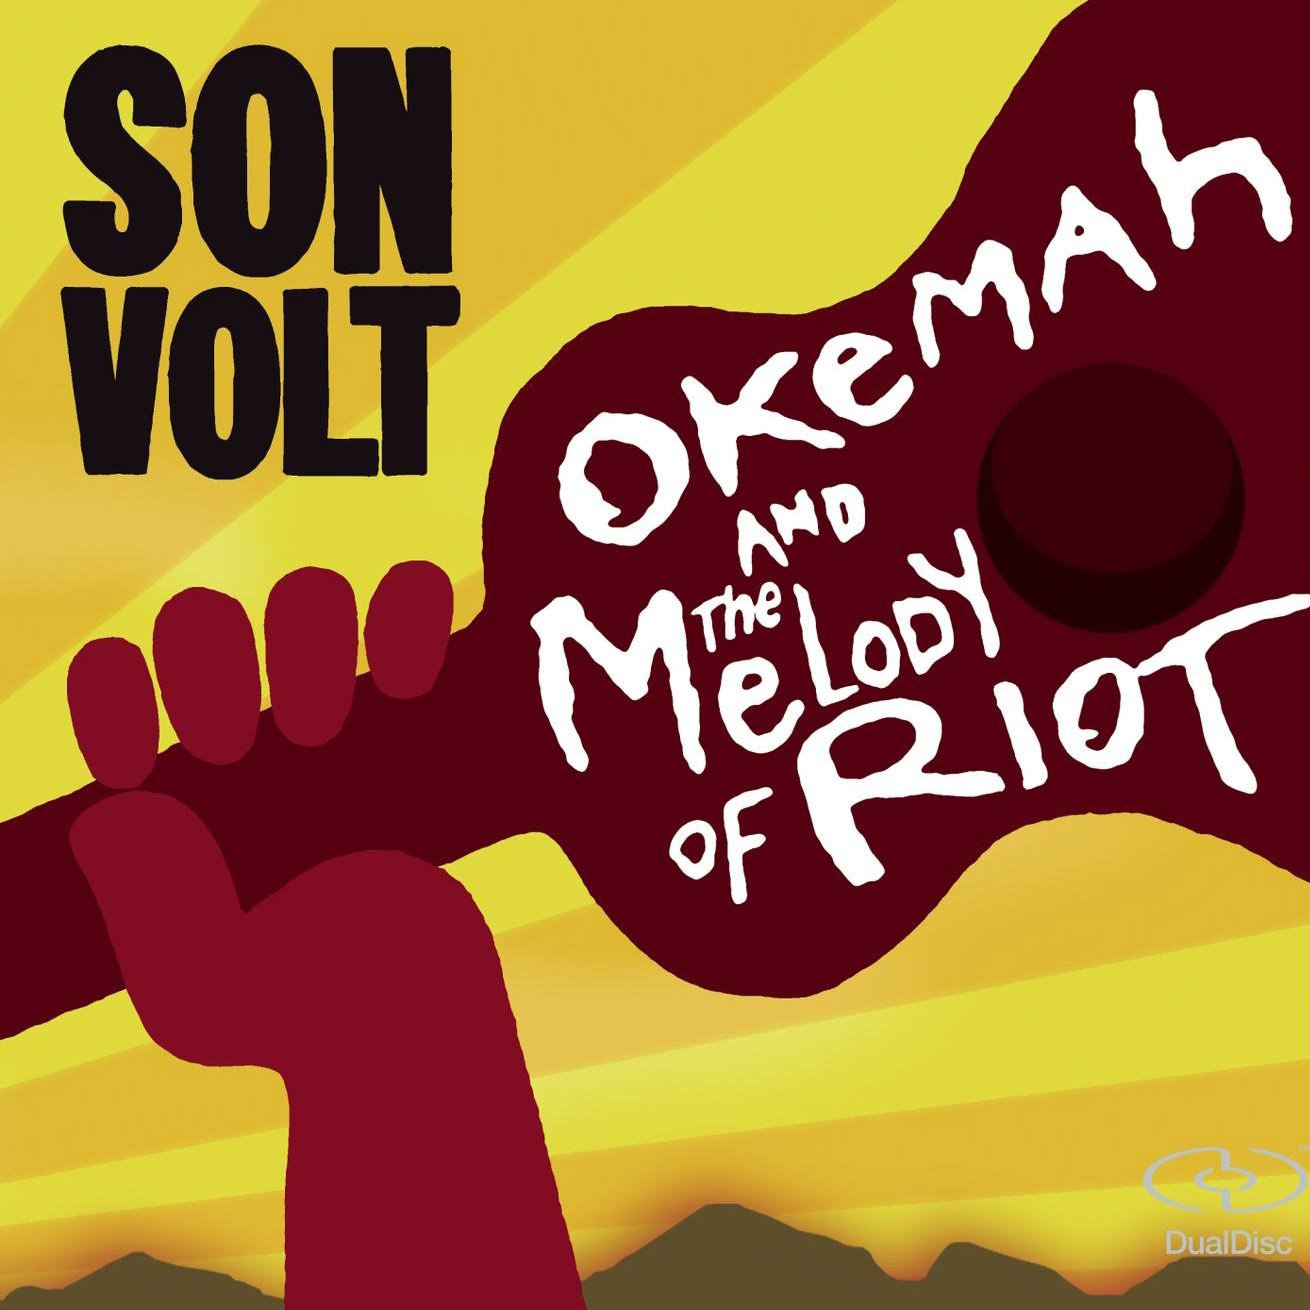 Son Volt, Okemah and the Melody of Riot